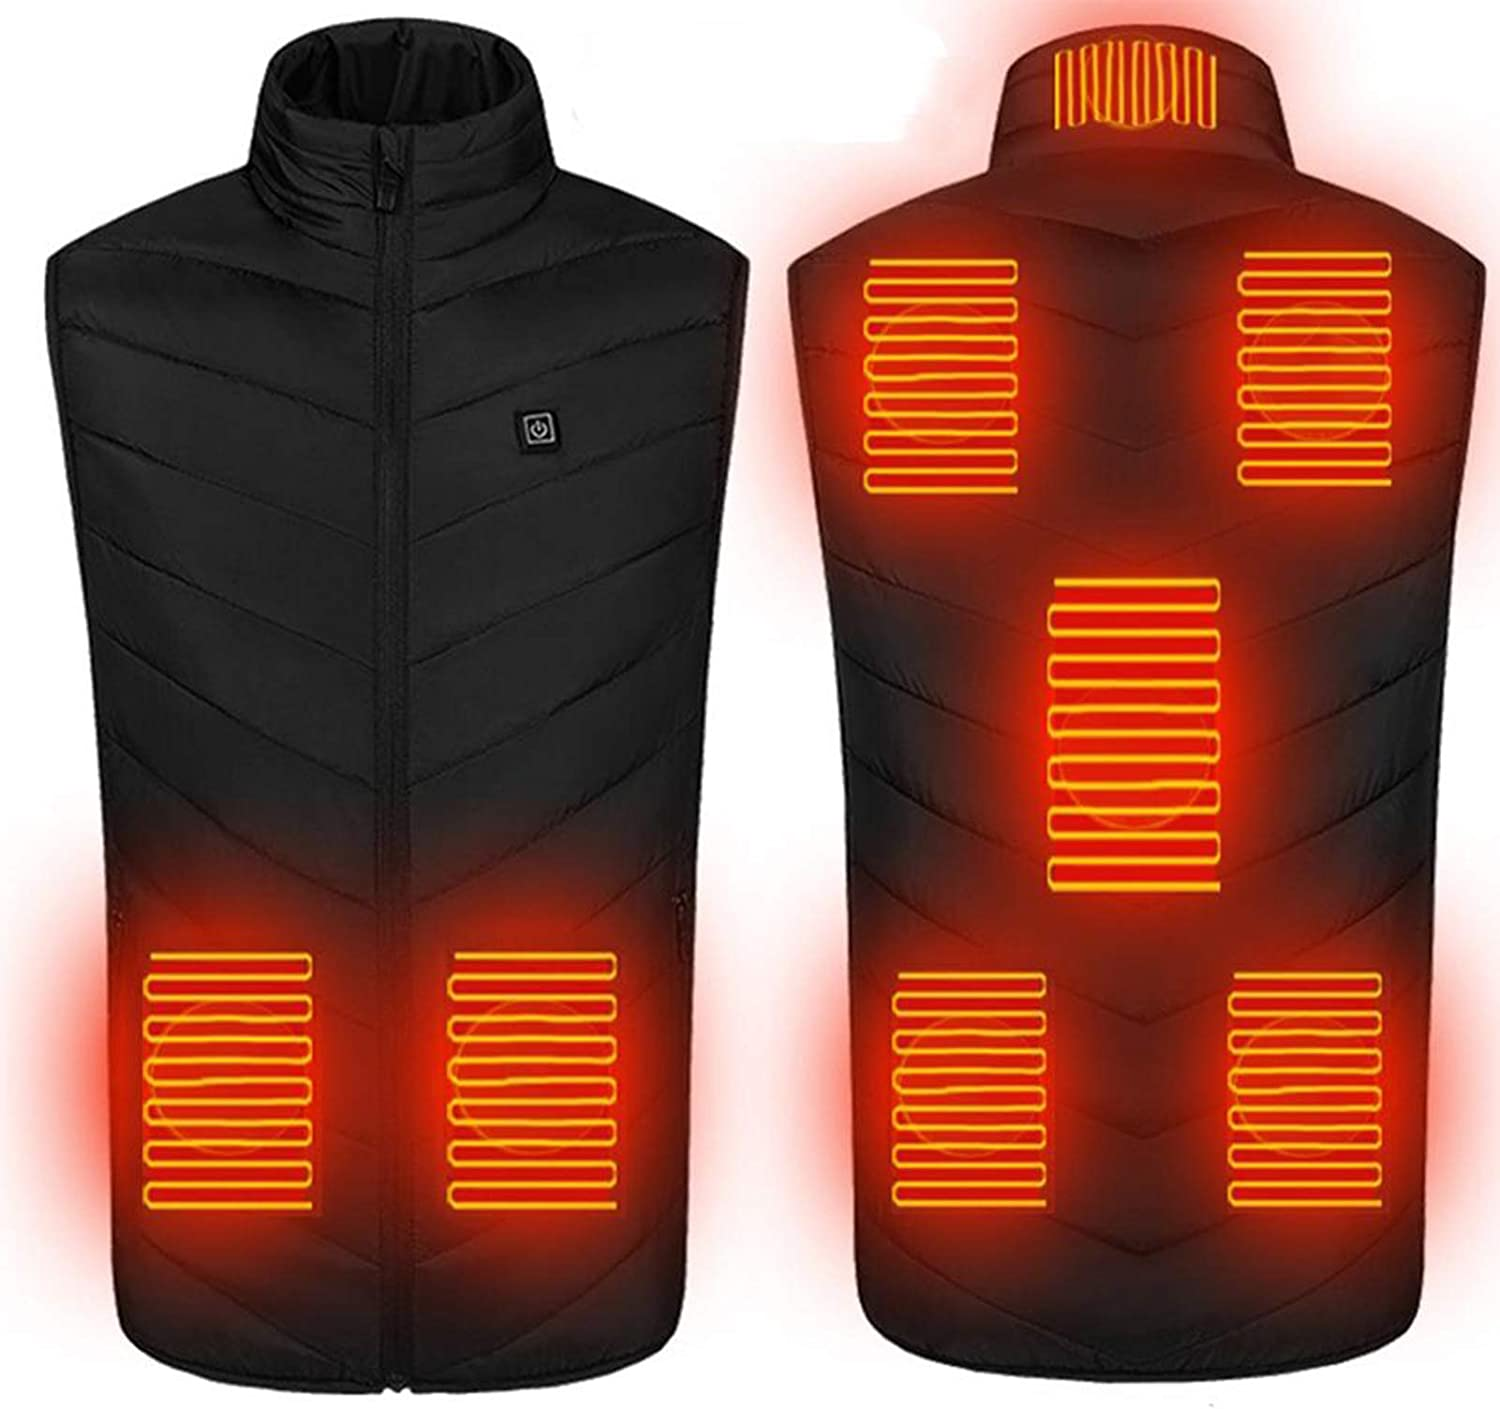 Electric Heated Vest Winter Thermal USB Heating Vest Heated Jacket Lightweight Electric Gilet Vest for Outdoor Working Skiing Hiking Unisex,Blue,S